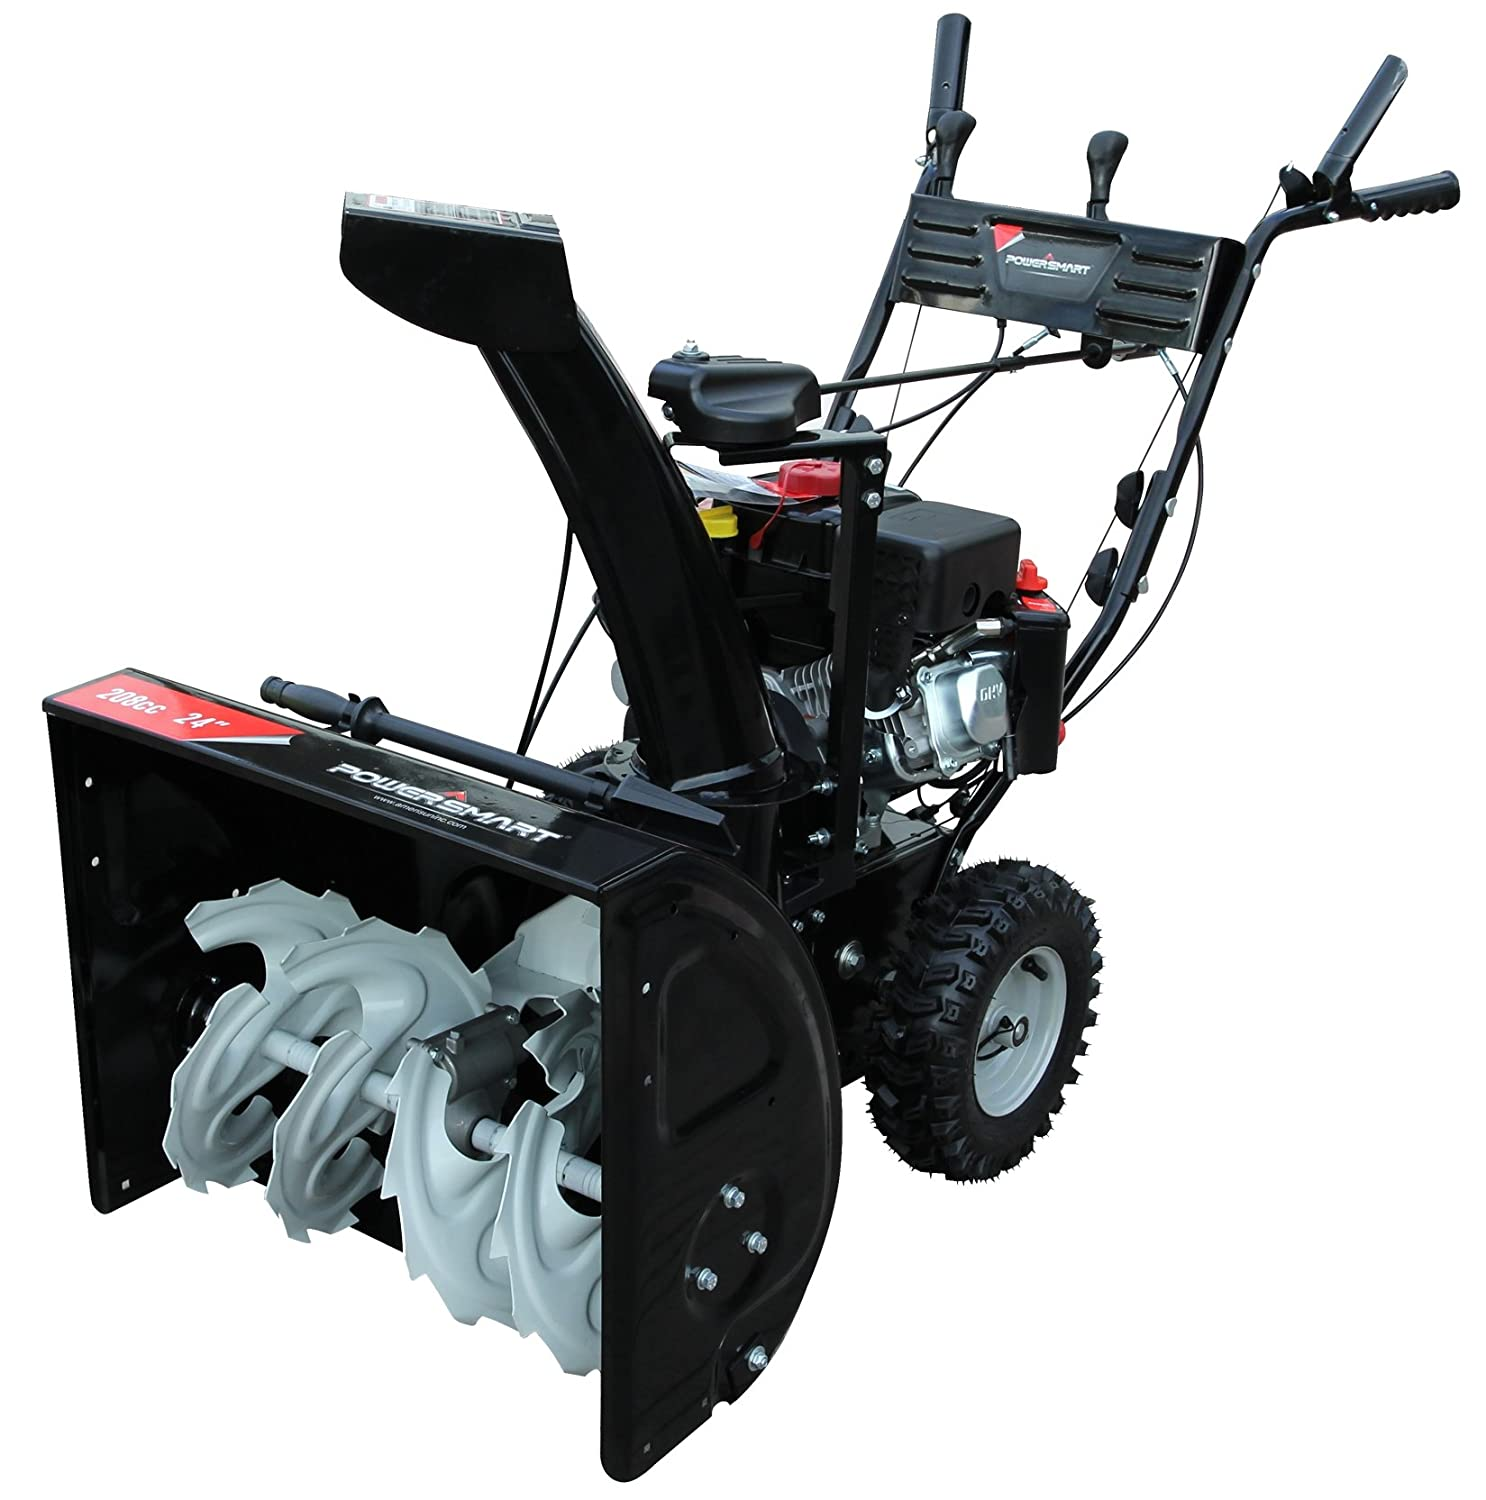 Top 10 Best Snow Thrower (2020 Reviews & Buying Guide) 3